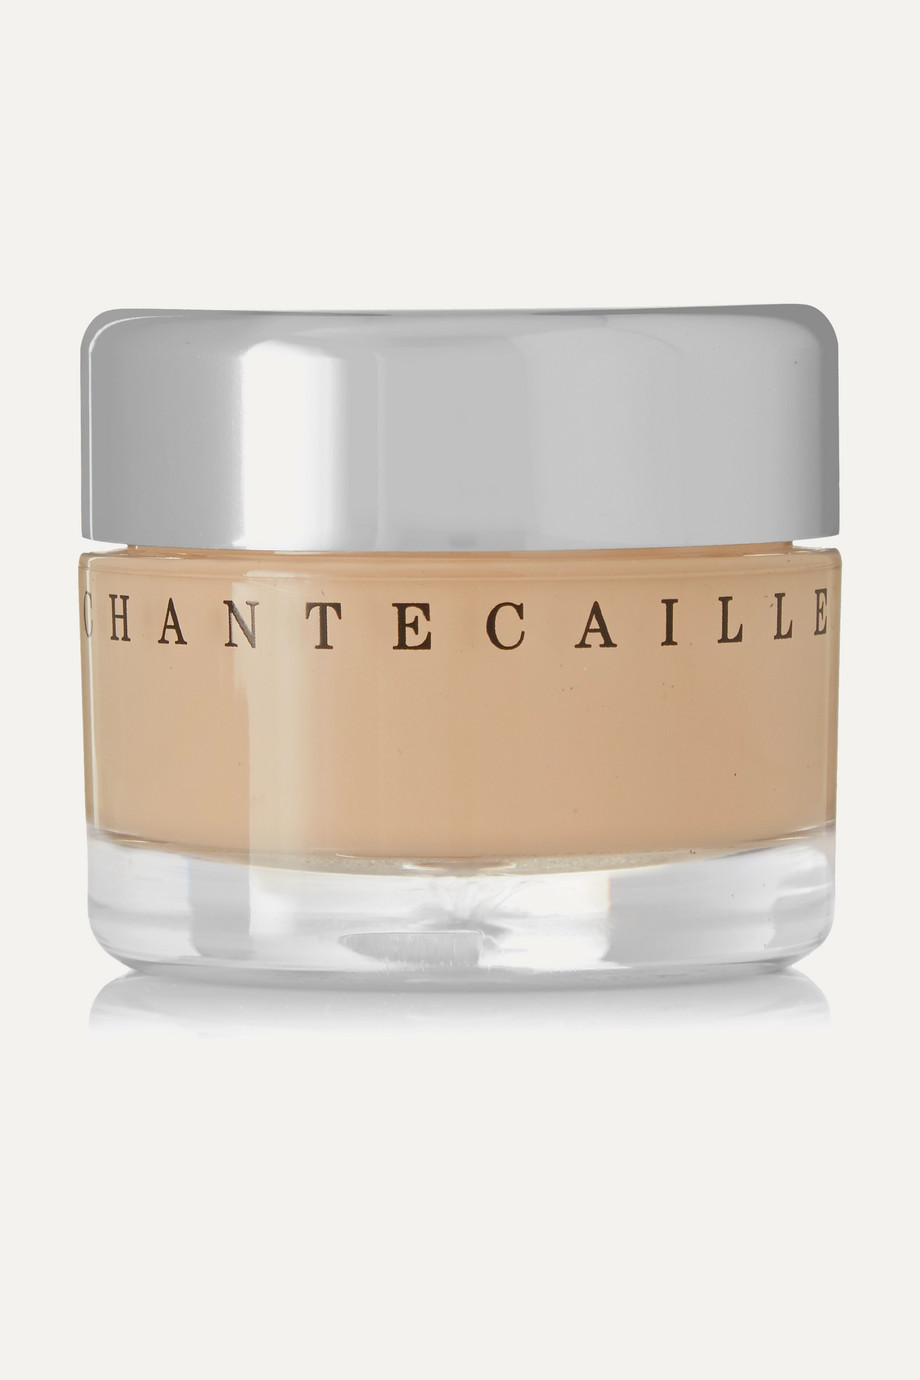 Chantecaille Future Skin Oil Free Gel Foundation - Nude, 30g